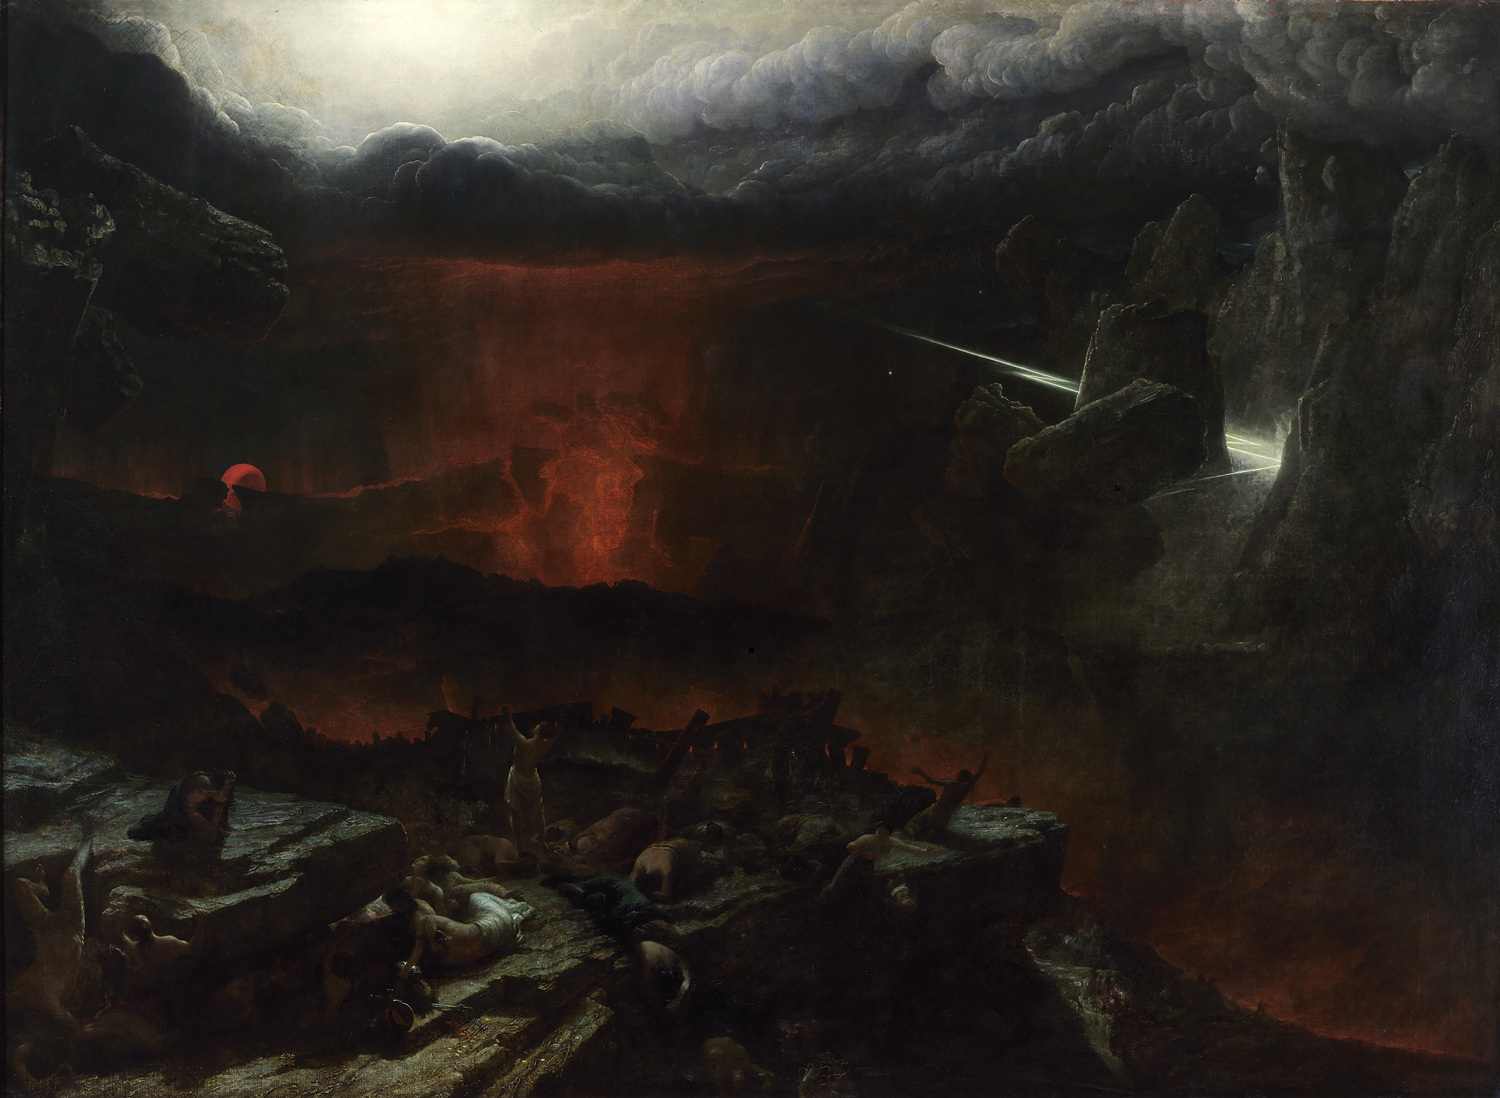 Dramatic oil painting of an apocalyptic landscape with lightening striking and lava flowing